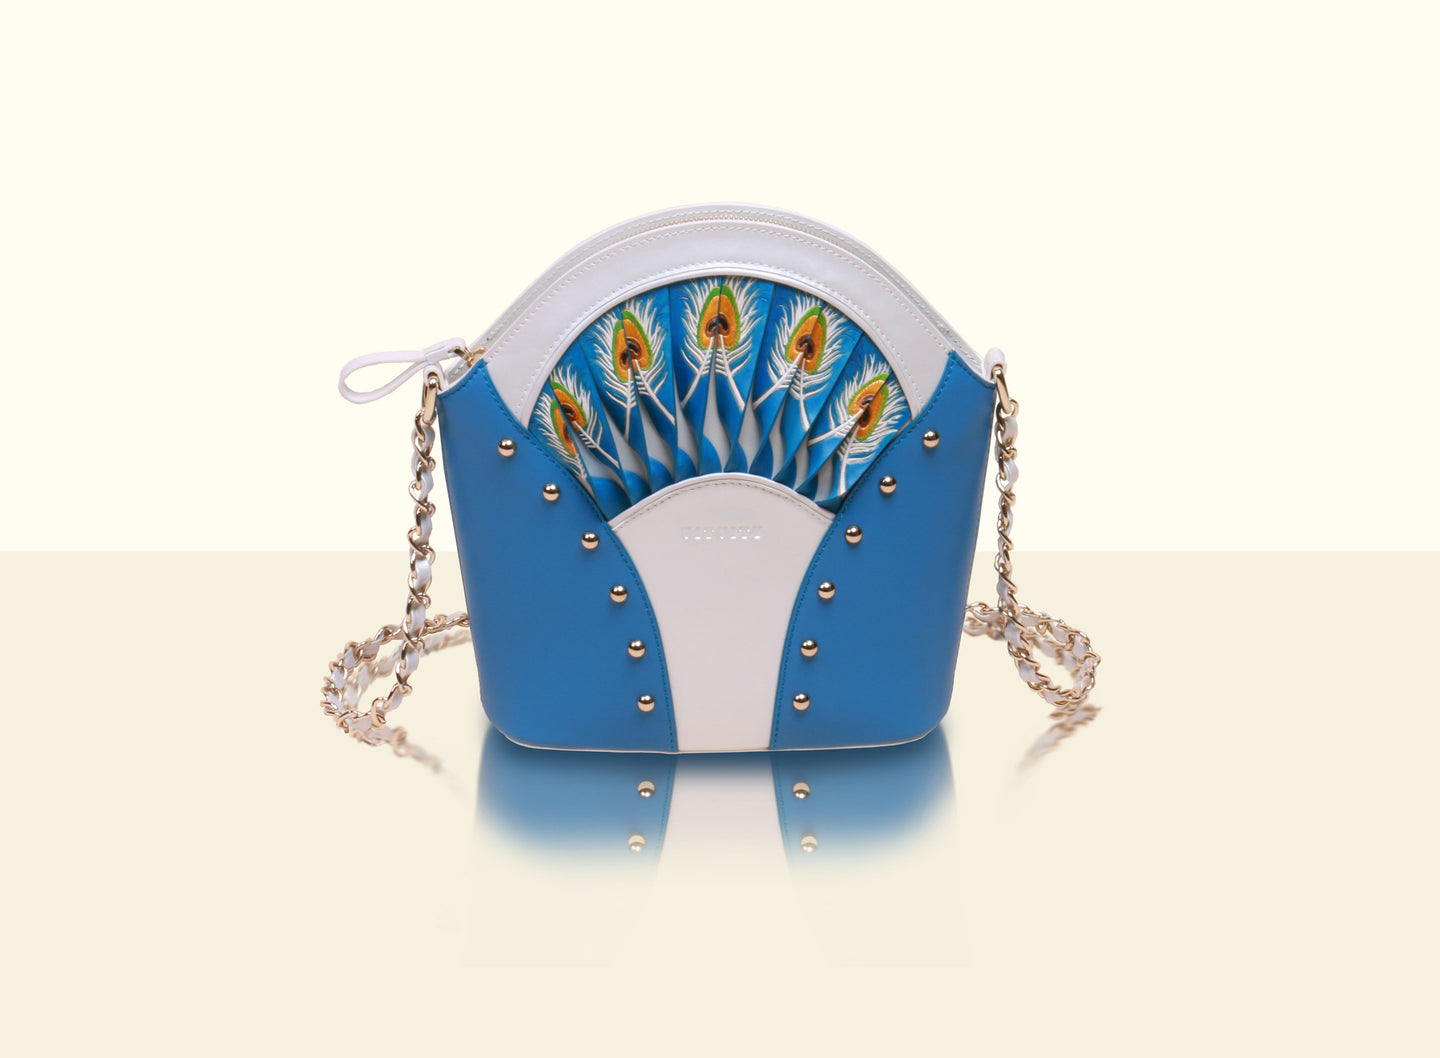 Preorder - Exquisite Fan Crossbody (Small) - Lake Blue and White